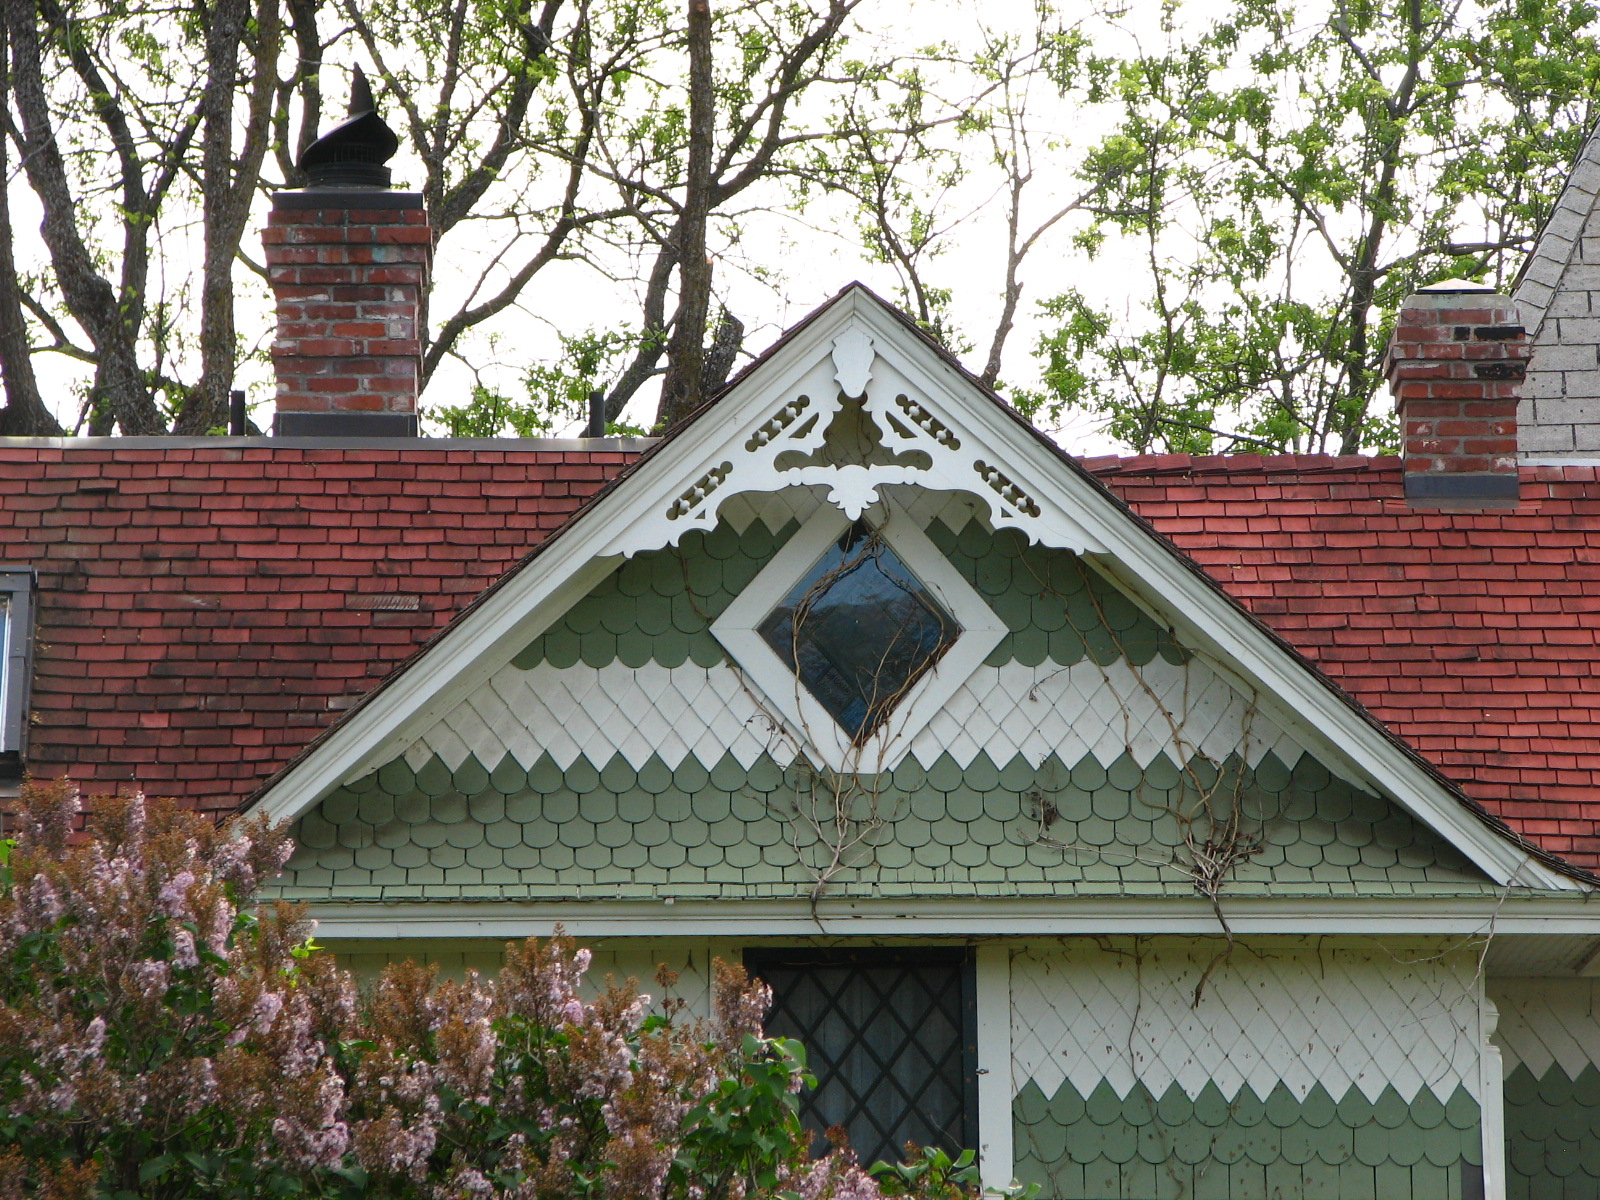 File mosier house gable detail mosier for Homes pictures